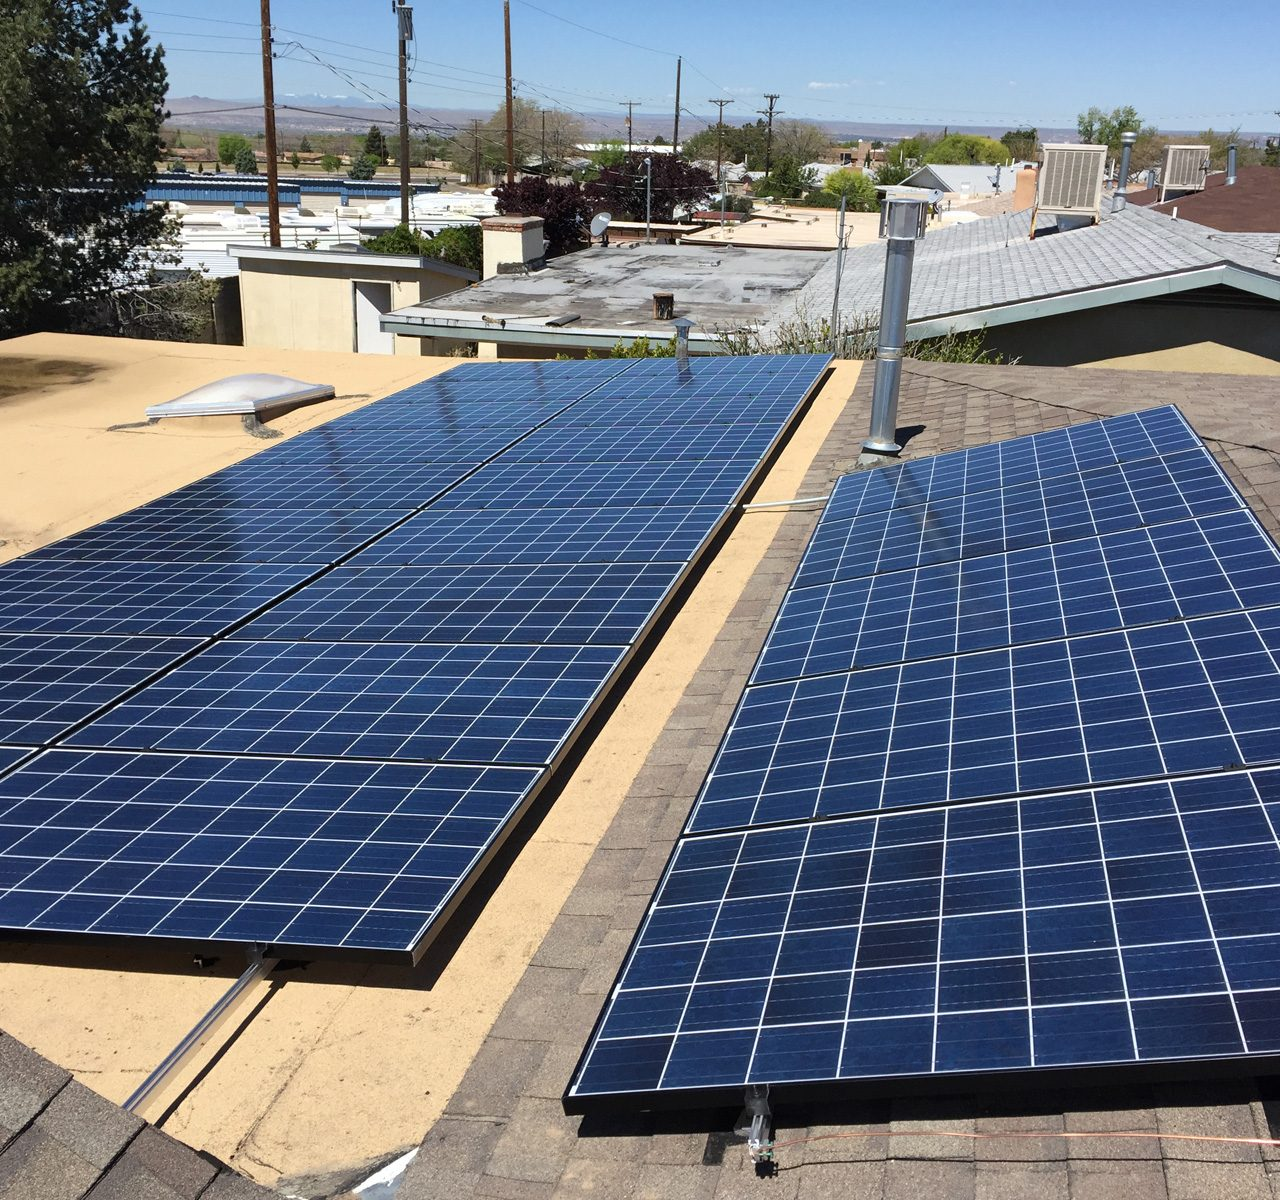 Solar Installation Project - By Poulin Solar Pro